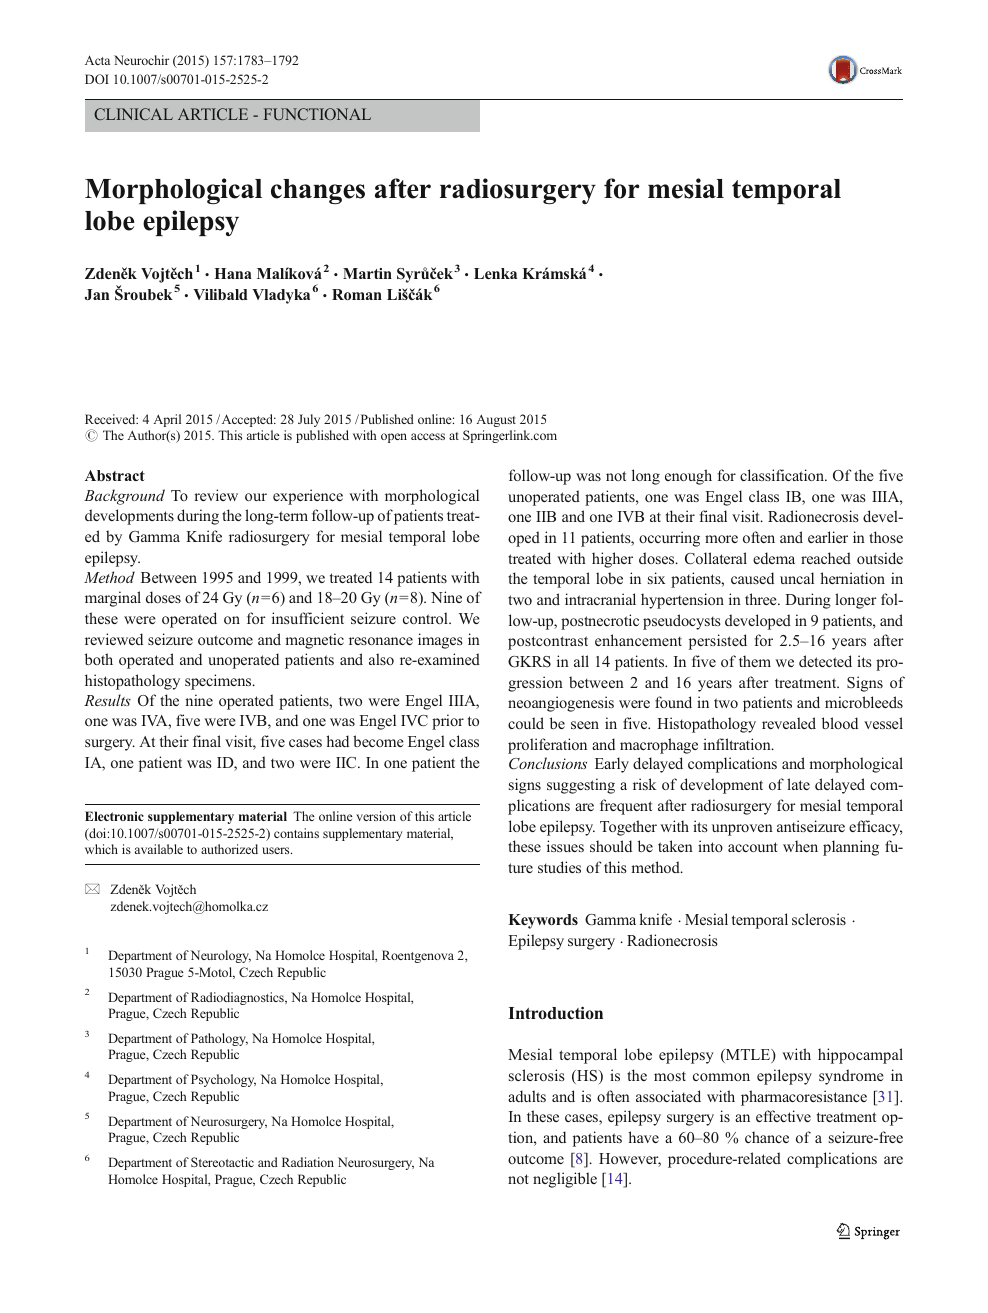 Morphological changes after radiosurgery for mesial temporal